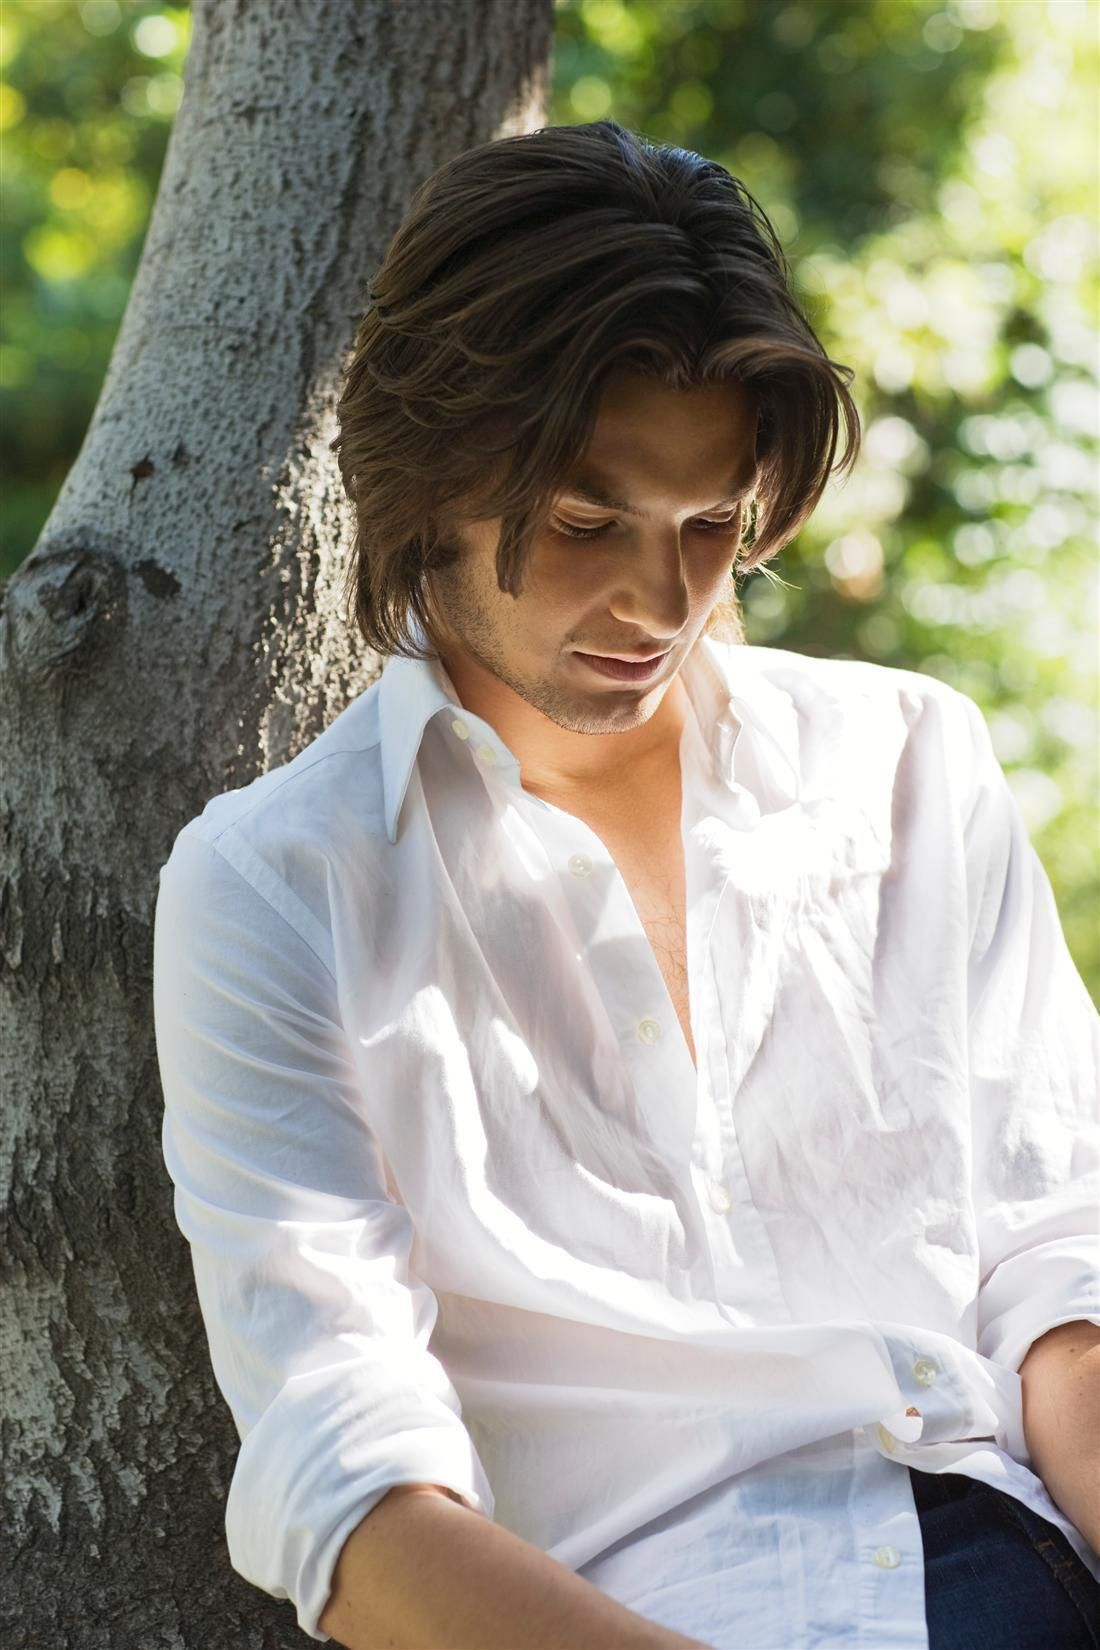 Ben Barnes :) for @Jesmarie13 (trying out the whole linking to twitter thing) oh and OMG JDKFkdsfjksd whut?